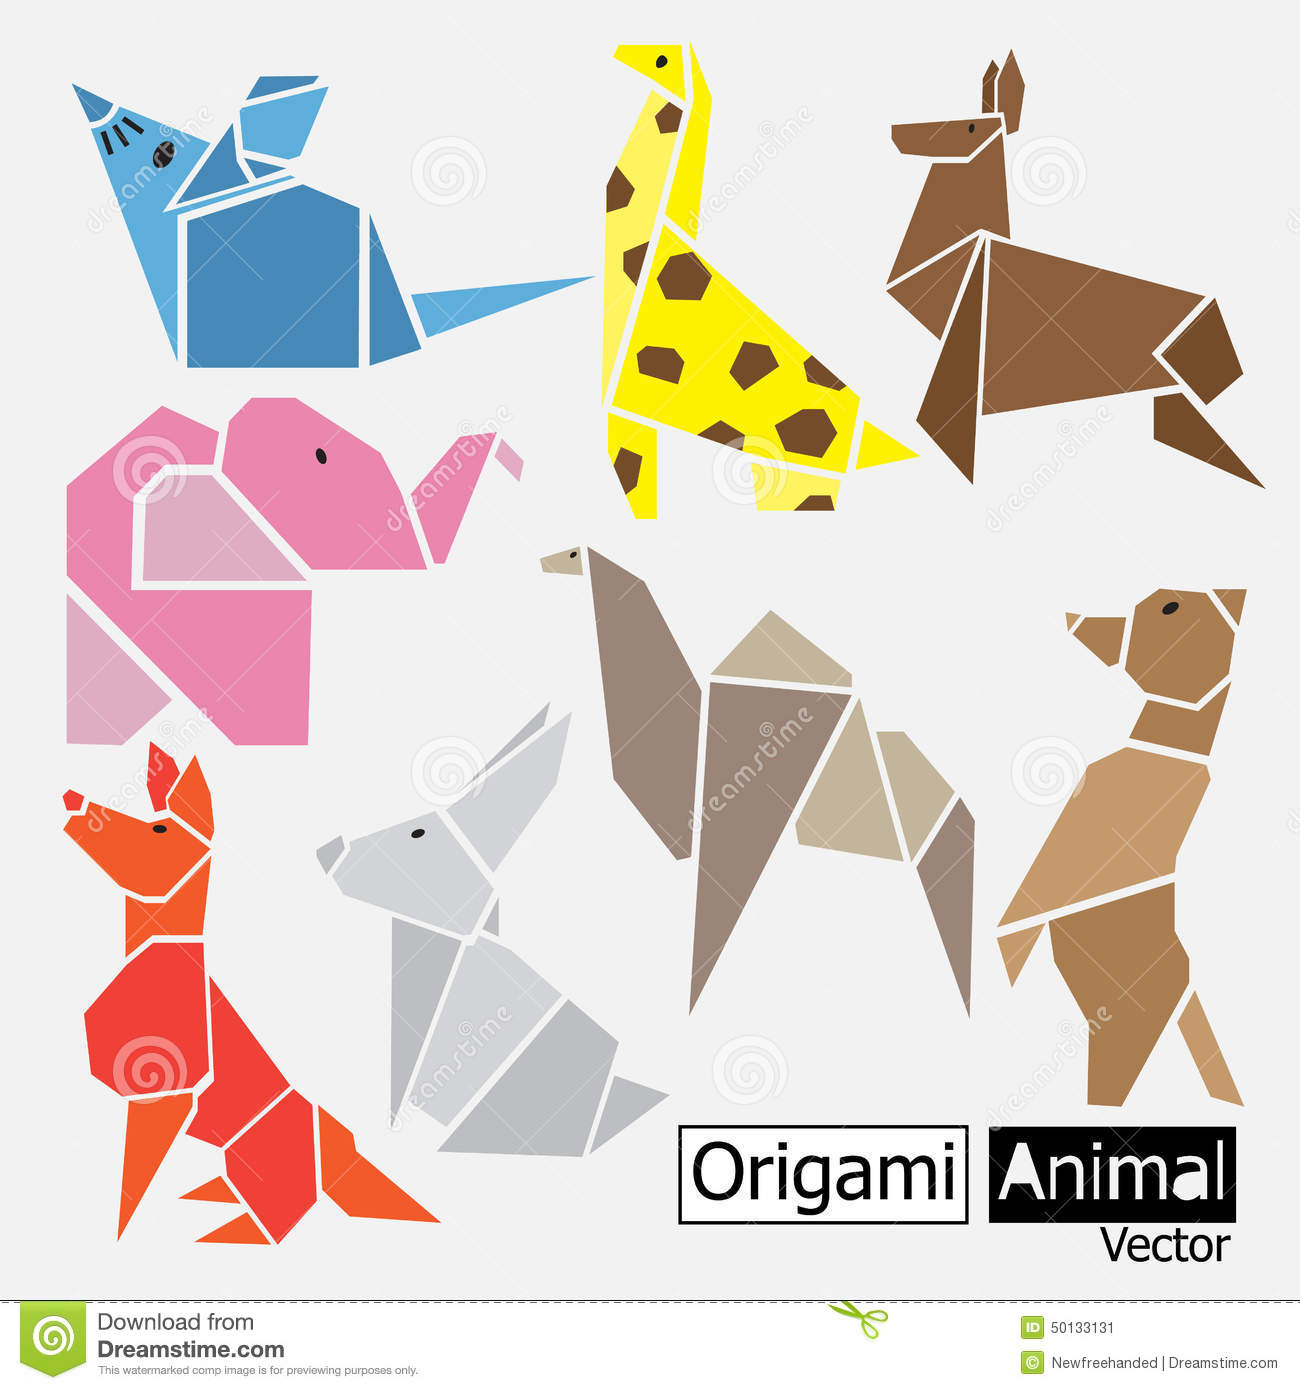 Animal Design Origami Animal Design Stock Vector Illustration Of Image 50133131